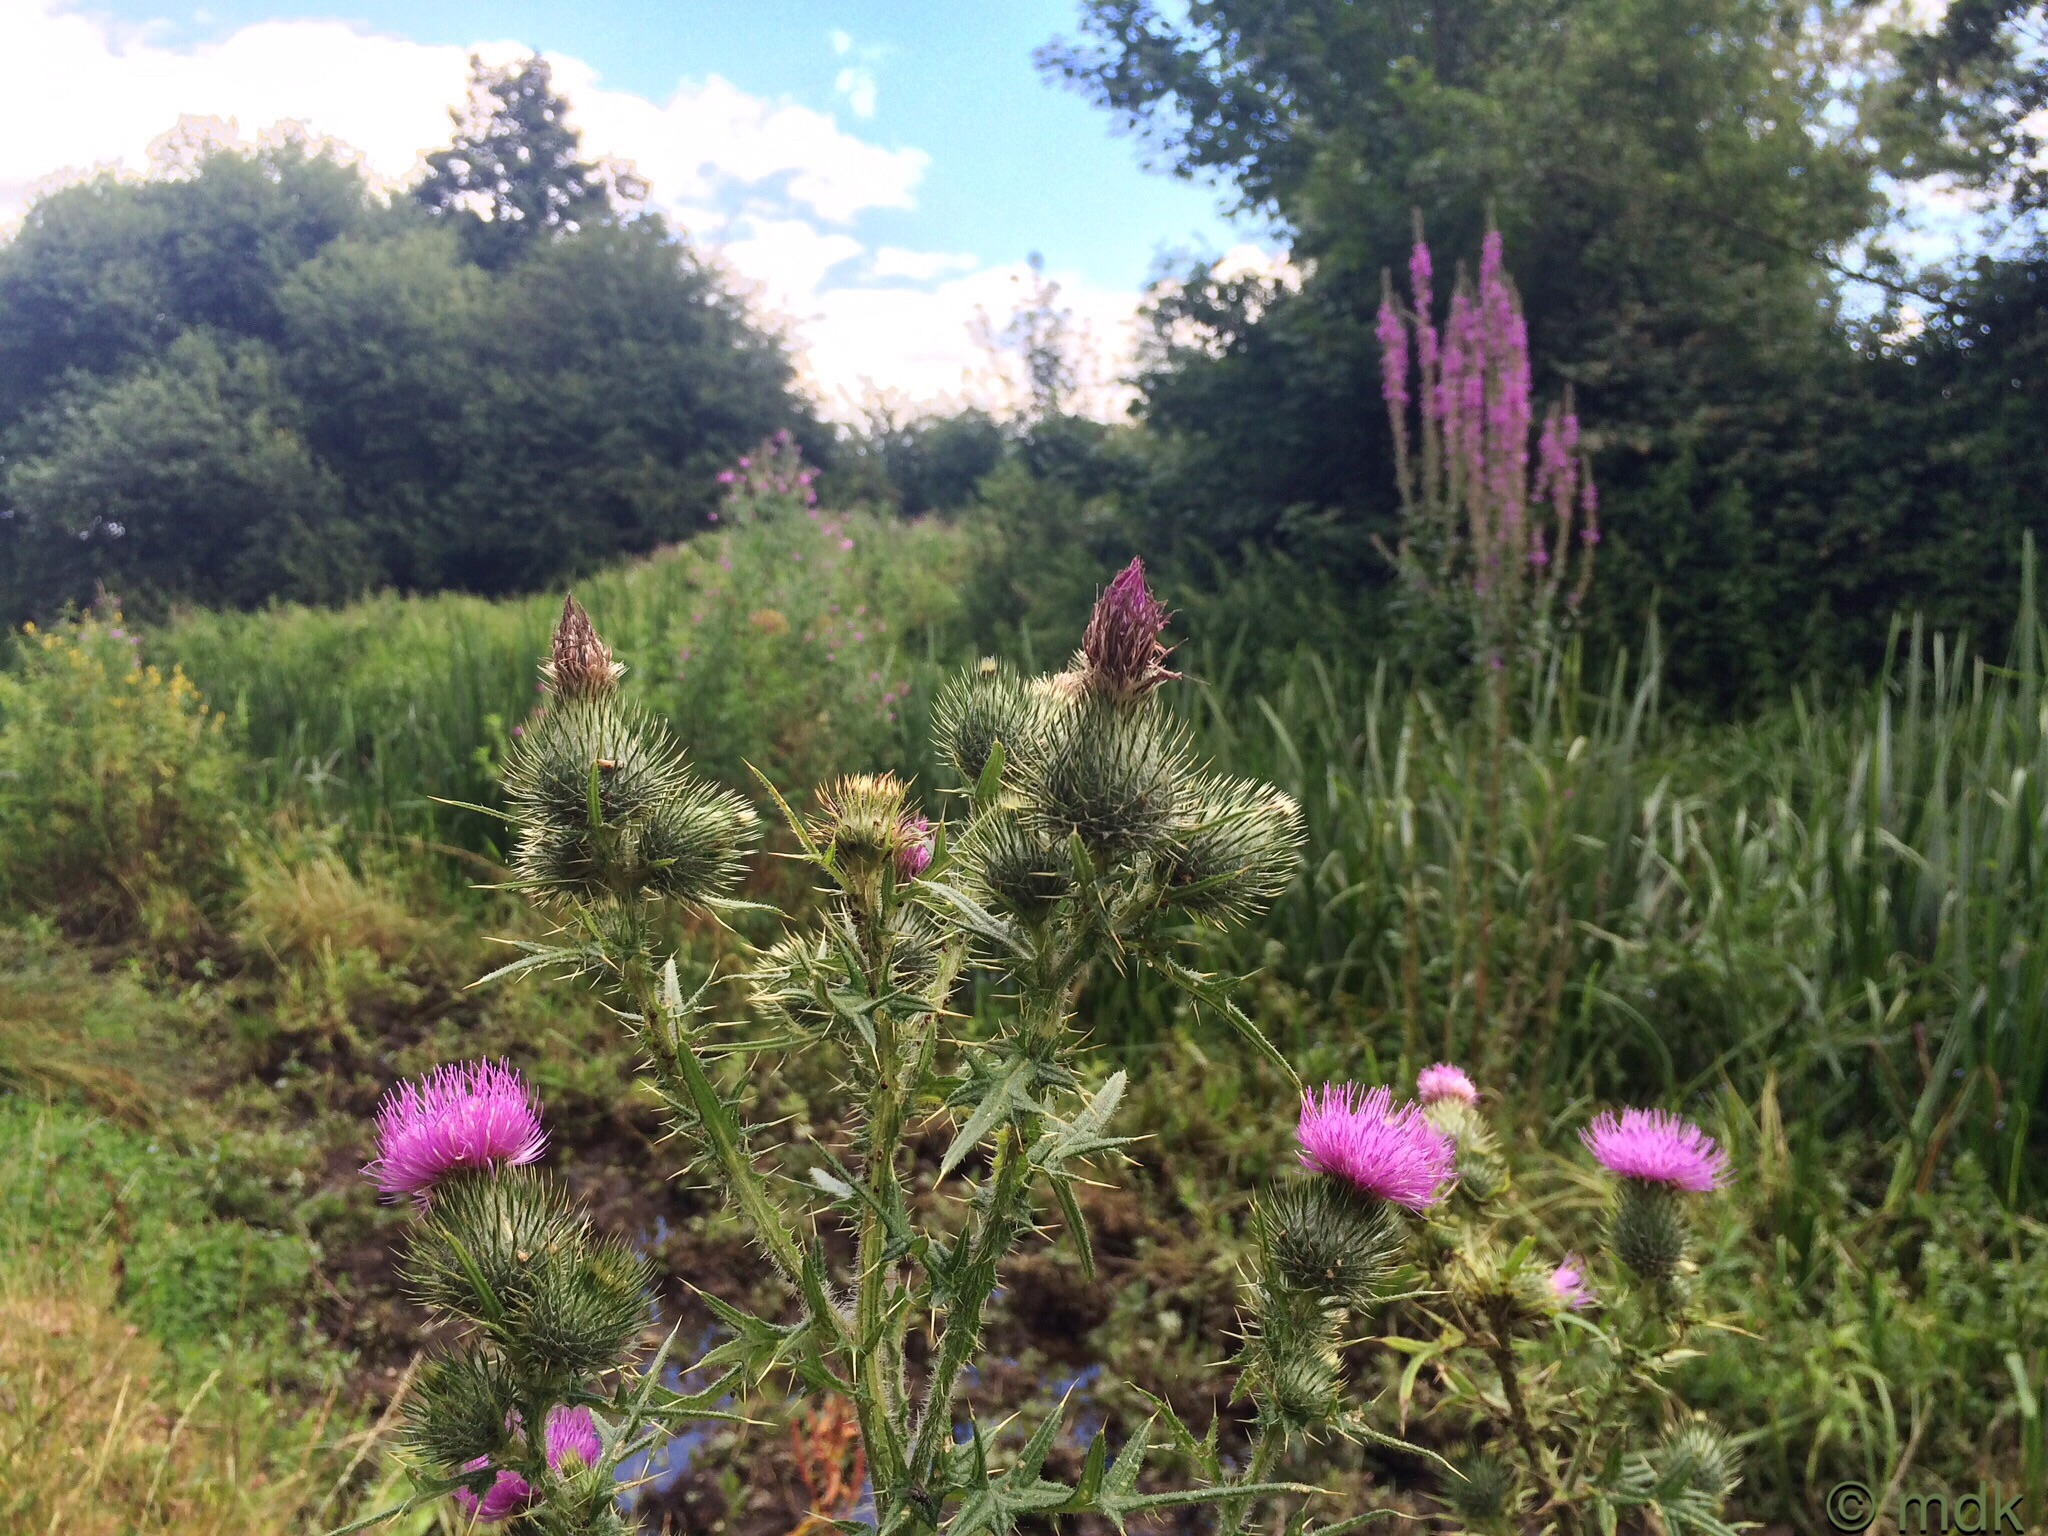 Knapweed, willowherb and toadflax